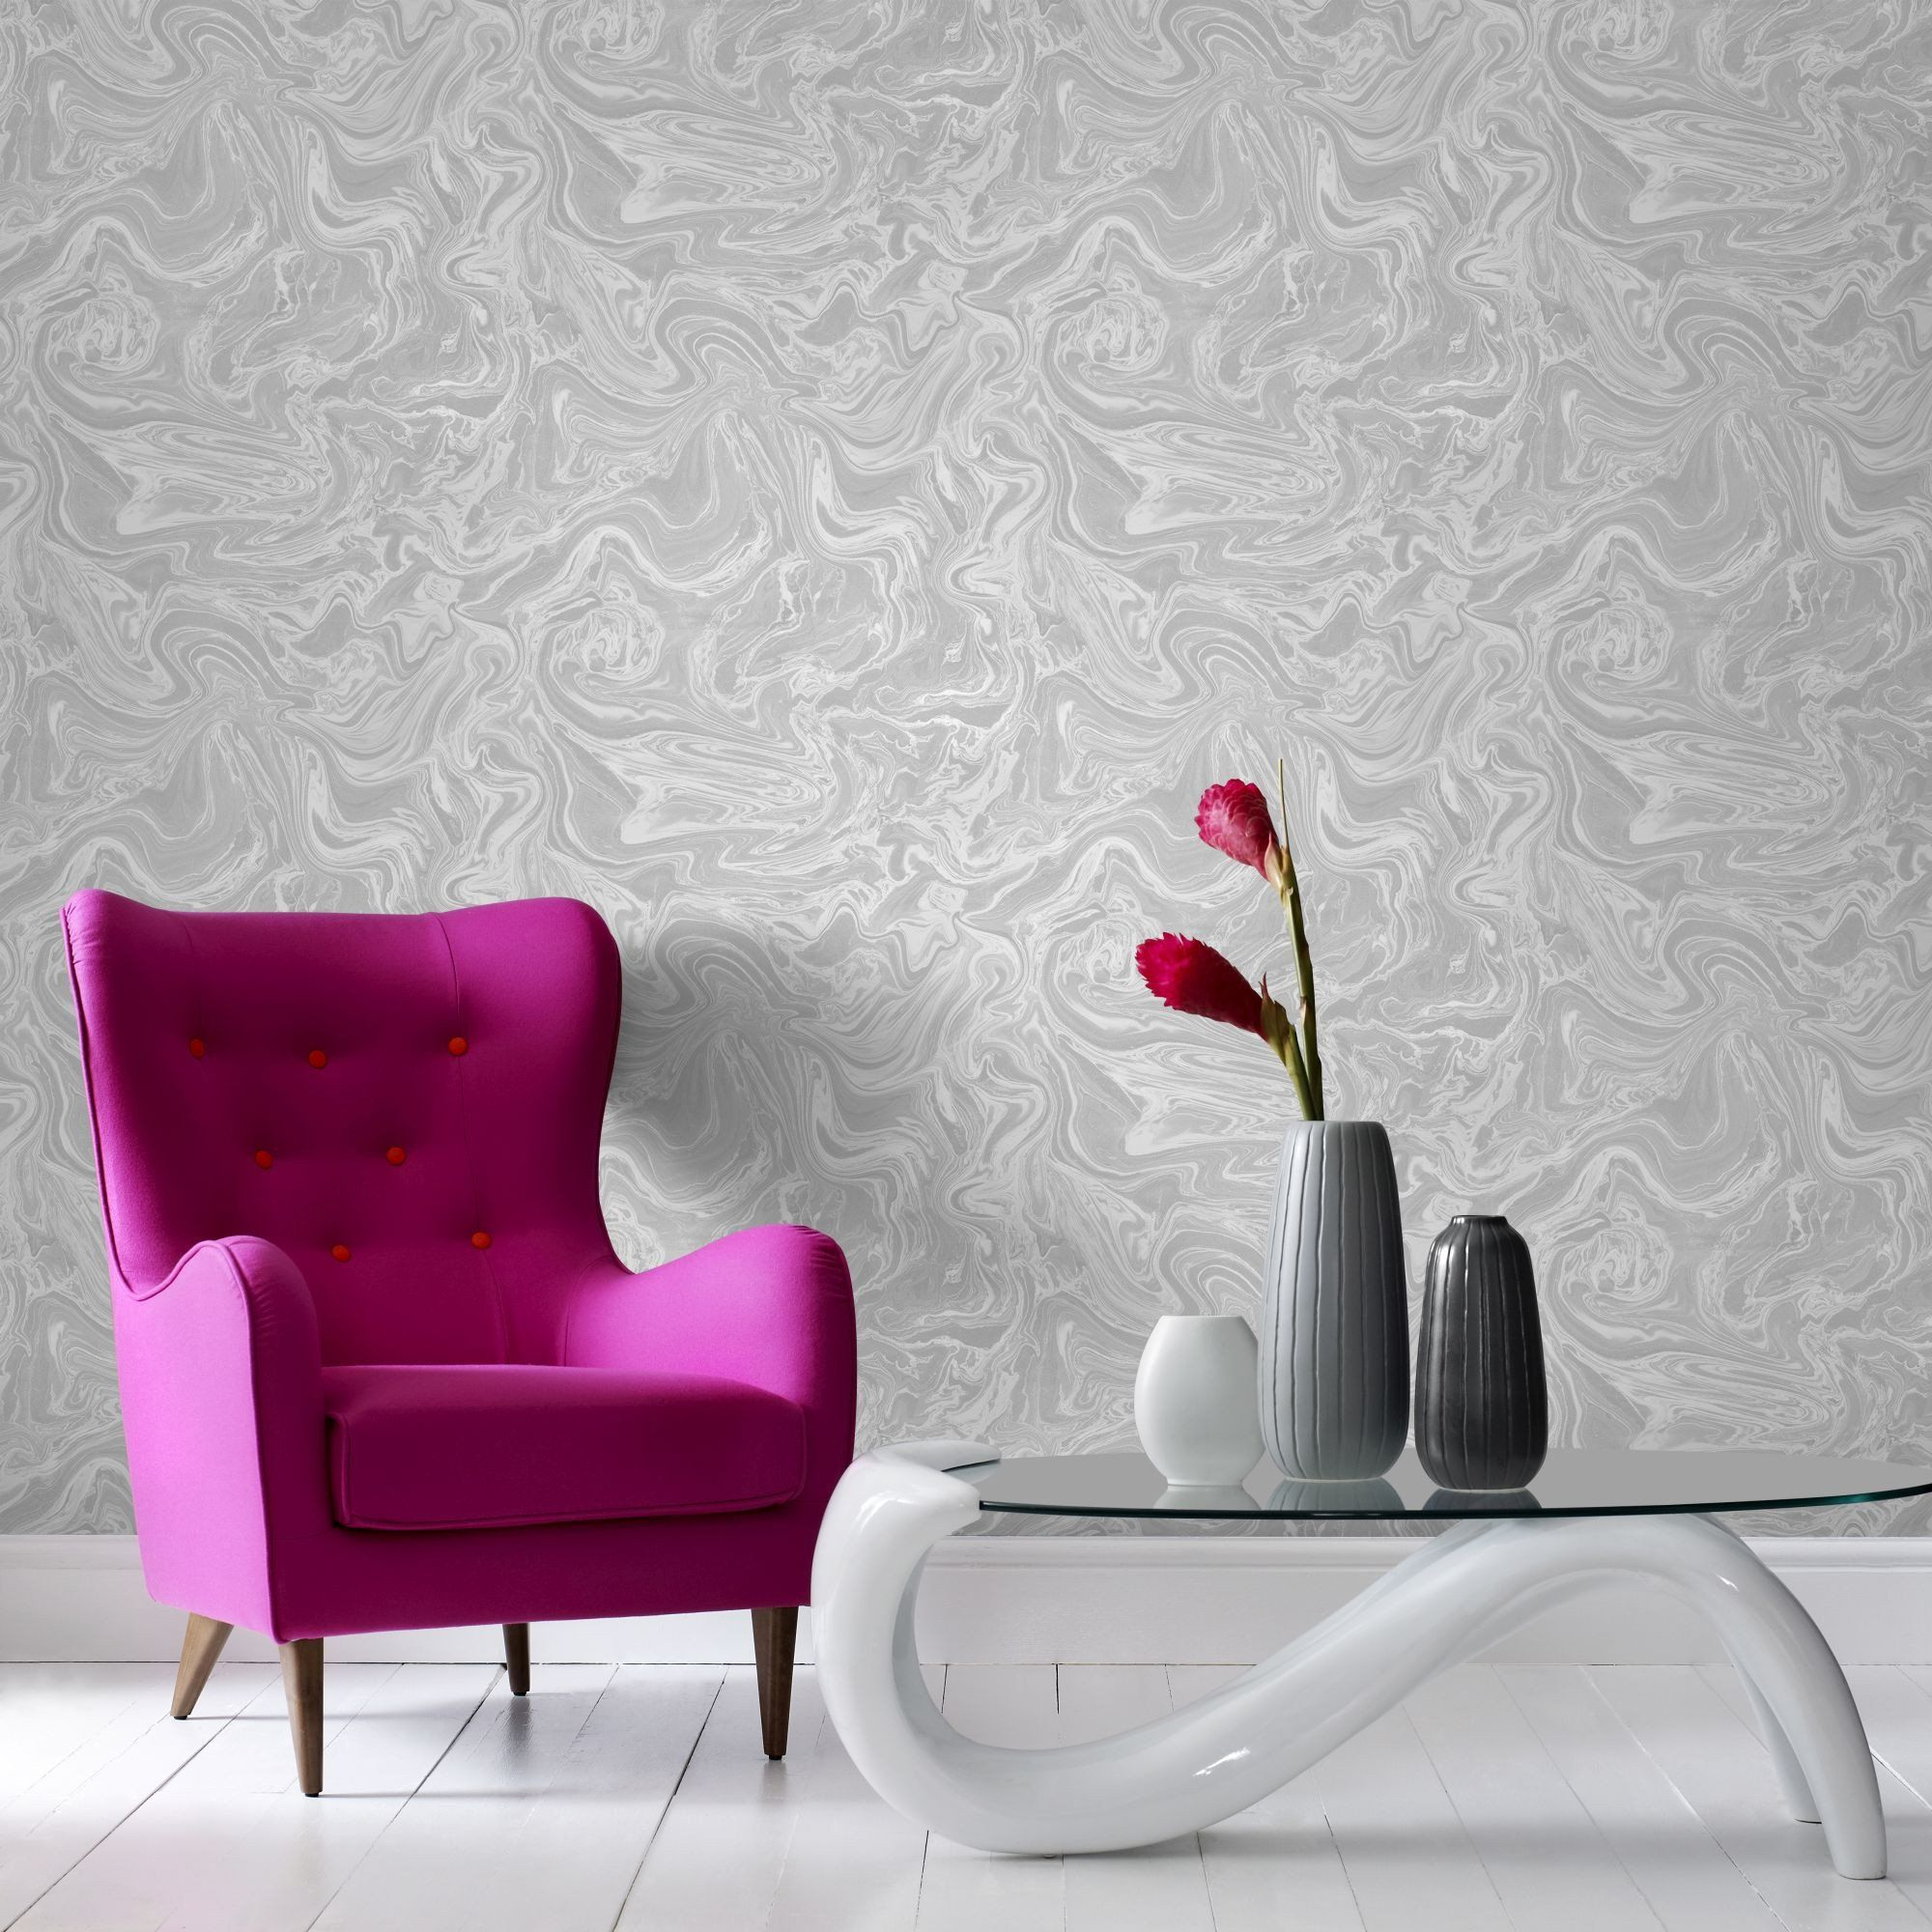 Marbled Wallpaper in Grey and White from the Pure Collection by Graham & Brown